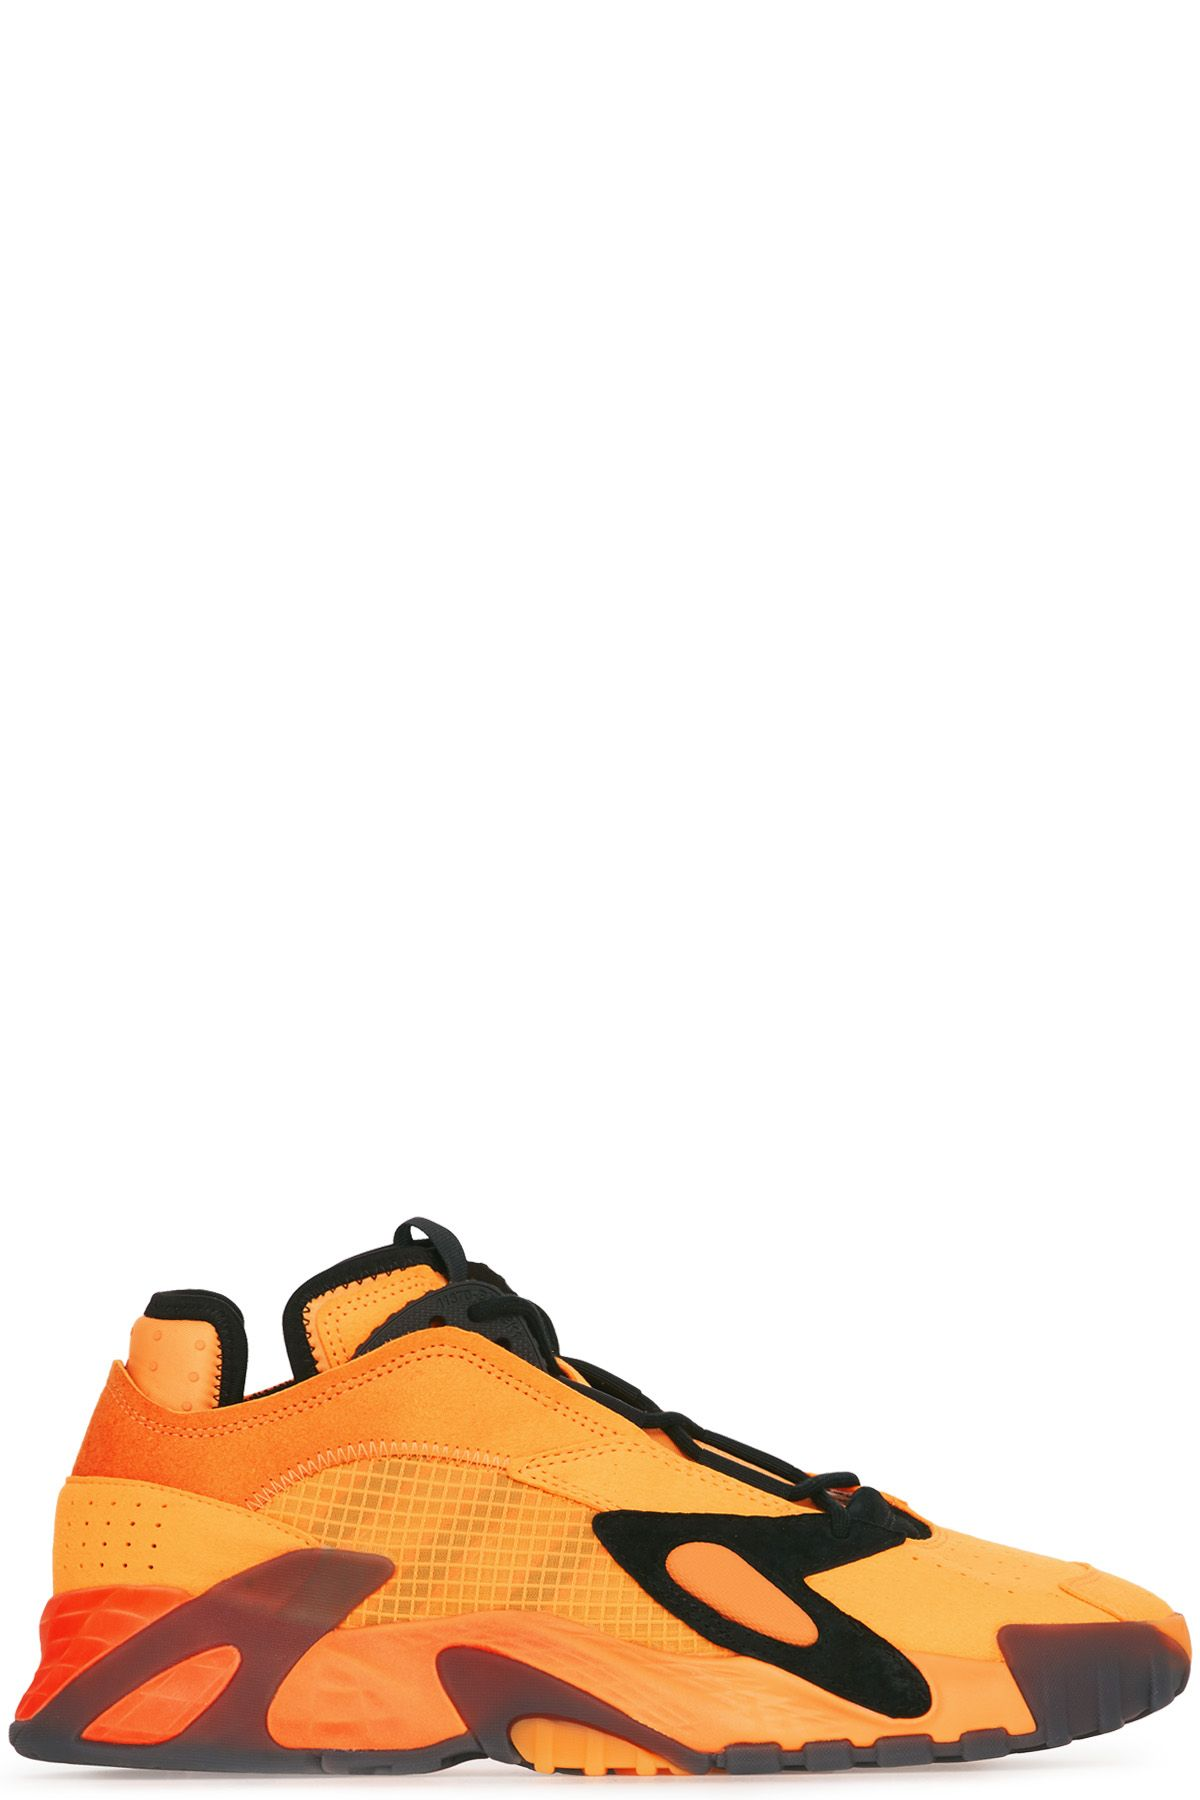 adidas Originals Streetball Flash OrangeSolar Orange